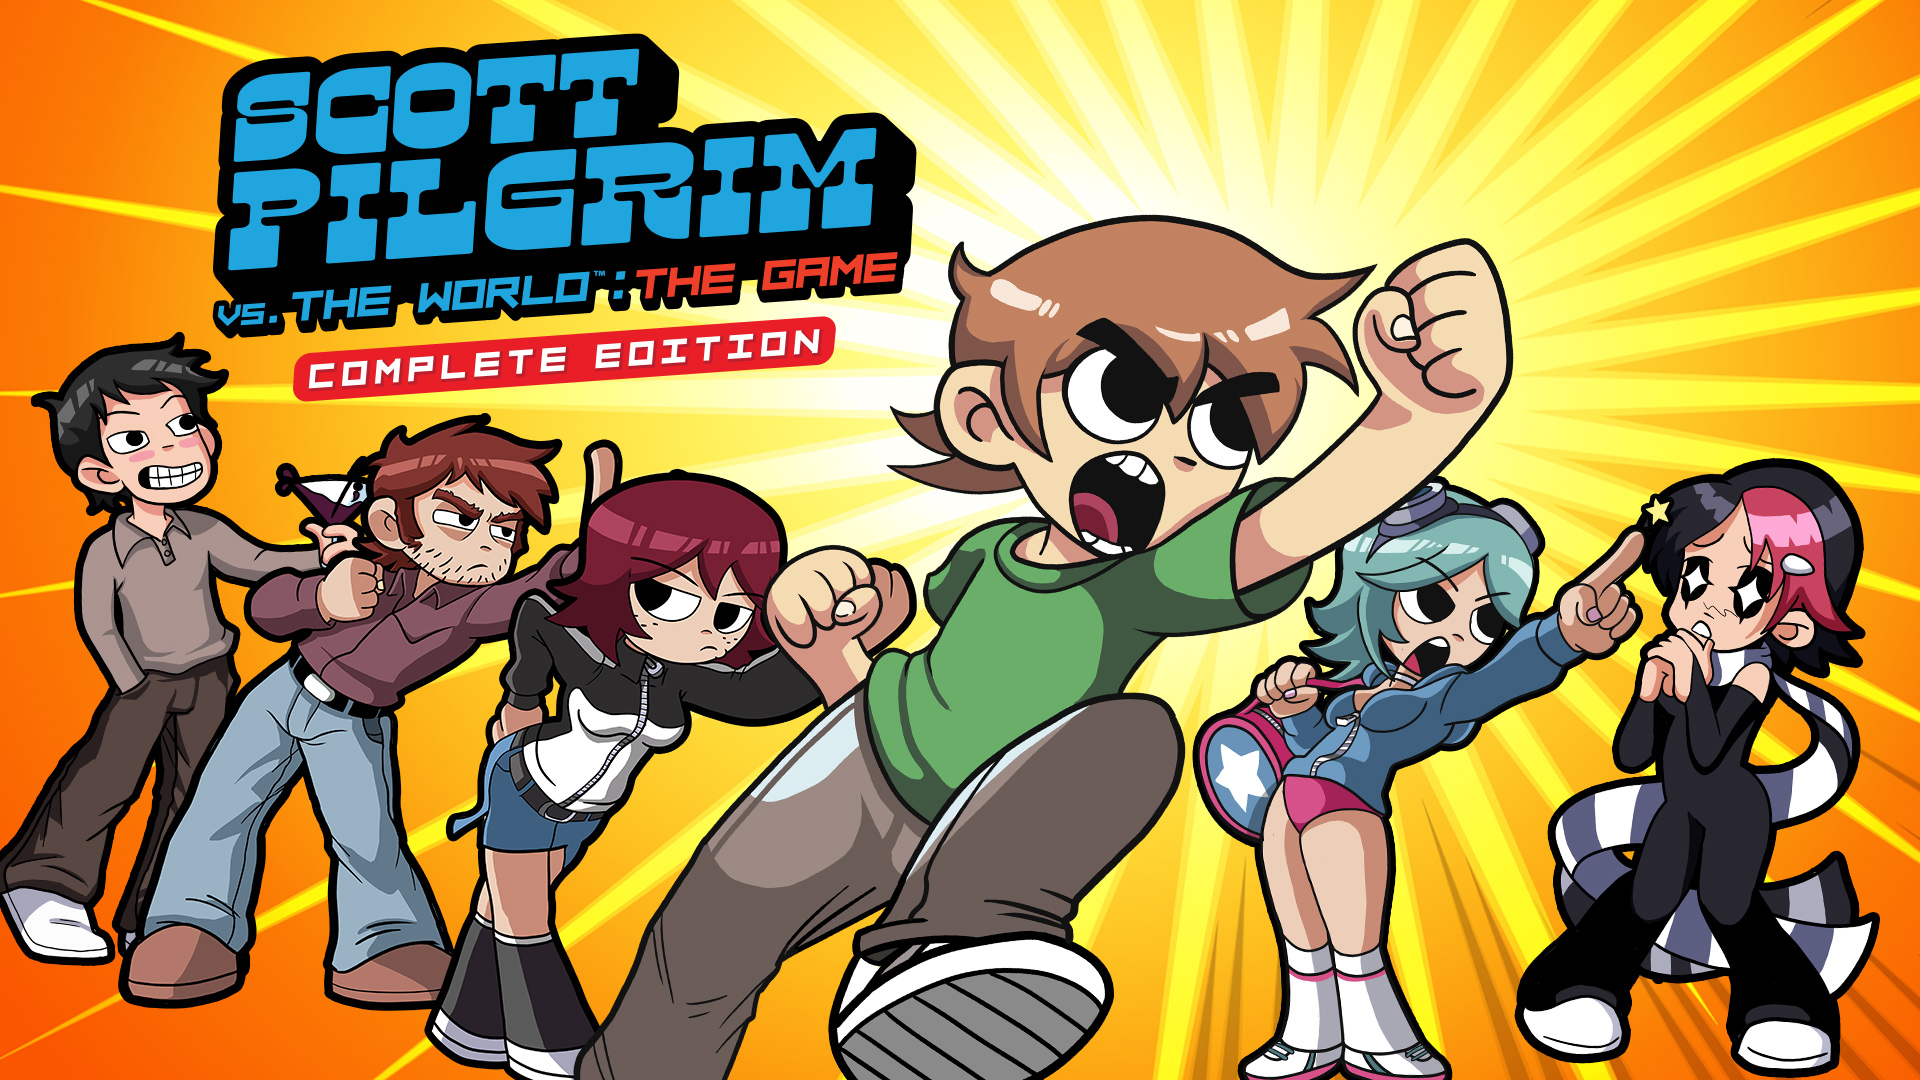 Scott Pilgrim vs. The World: The Game – Complete Edition v1.0.1 + Yuzu Emu for PC